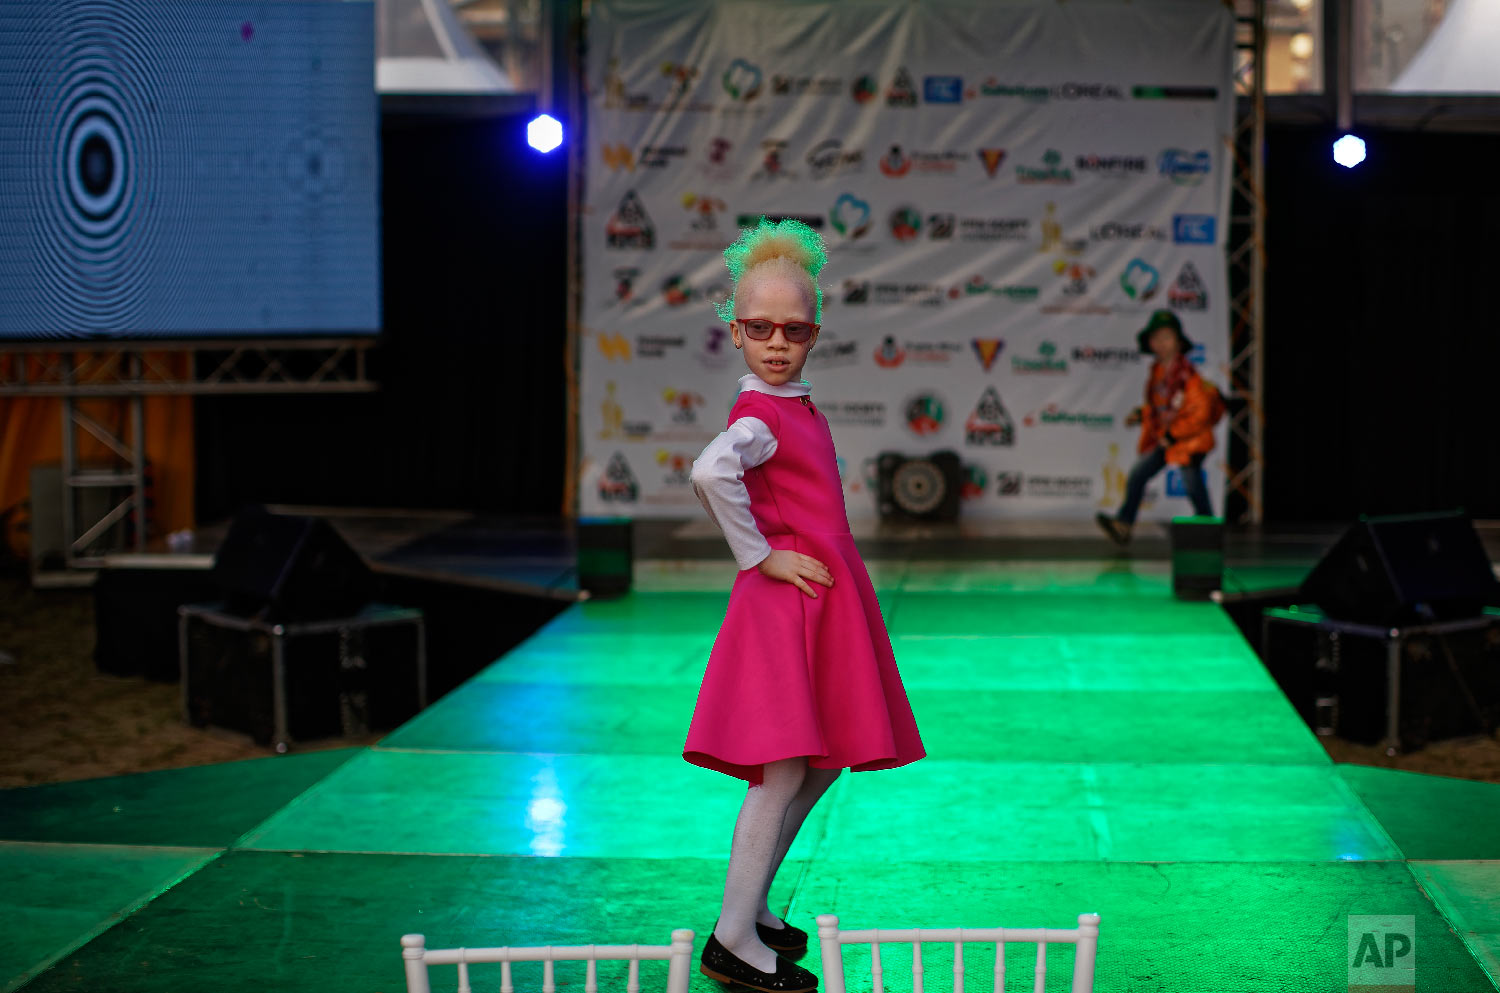 Shirlyne 7, tries her hand on the catwalk before the start of the Mr. & Miss Albinism East Africa contest, organized by the Albinism Society of Kenya, in Nairobi, Kenya, Nov. 30, 2018. (AP Photo/Ben Curtis)